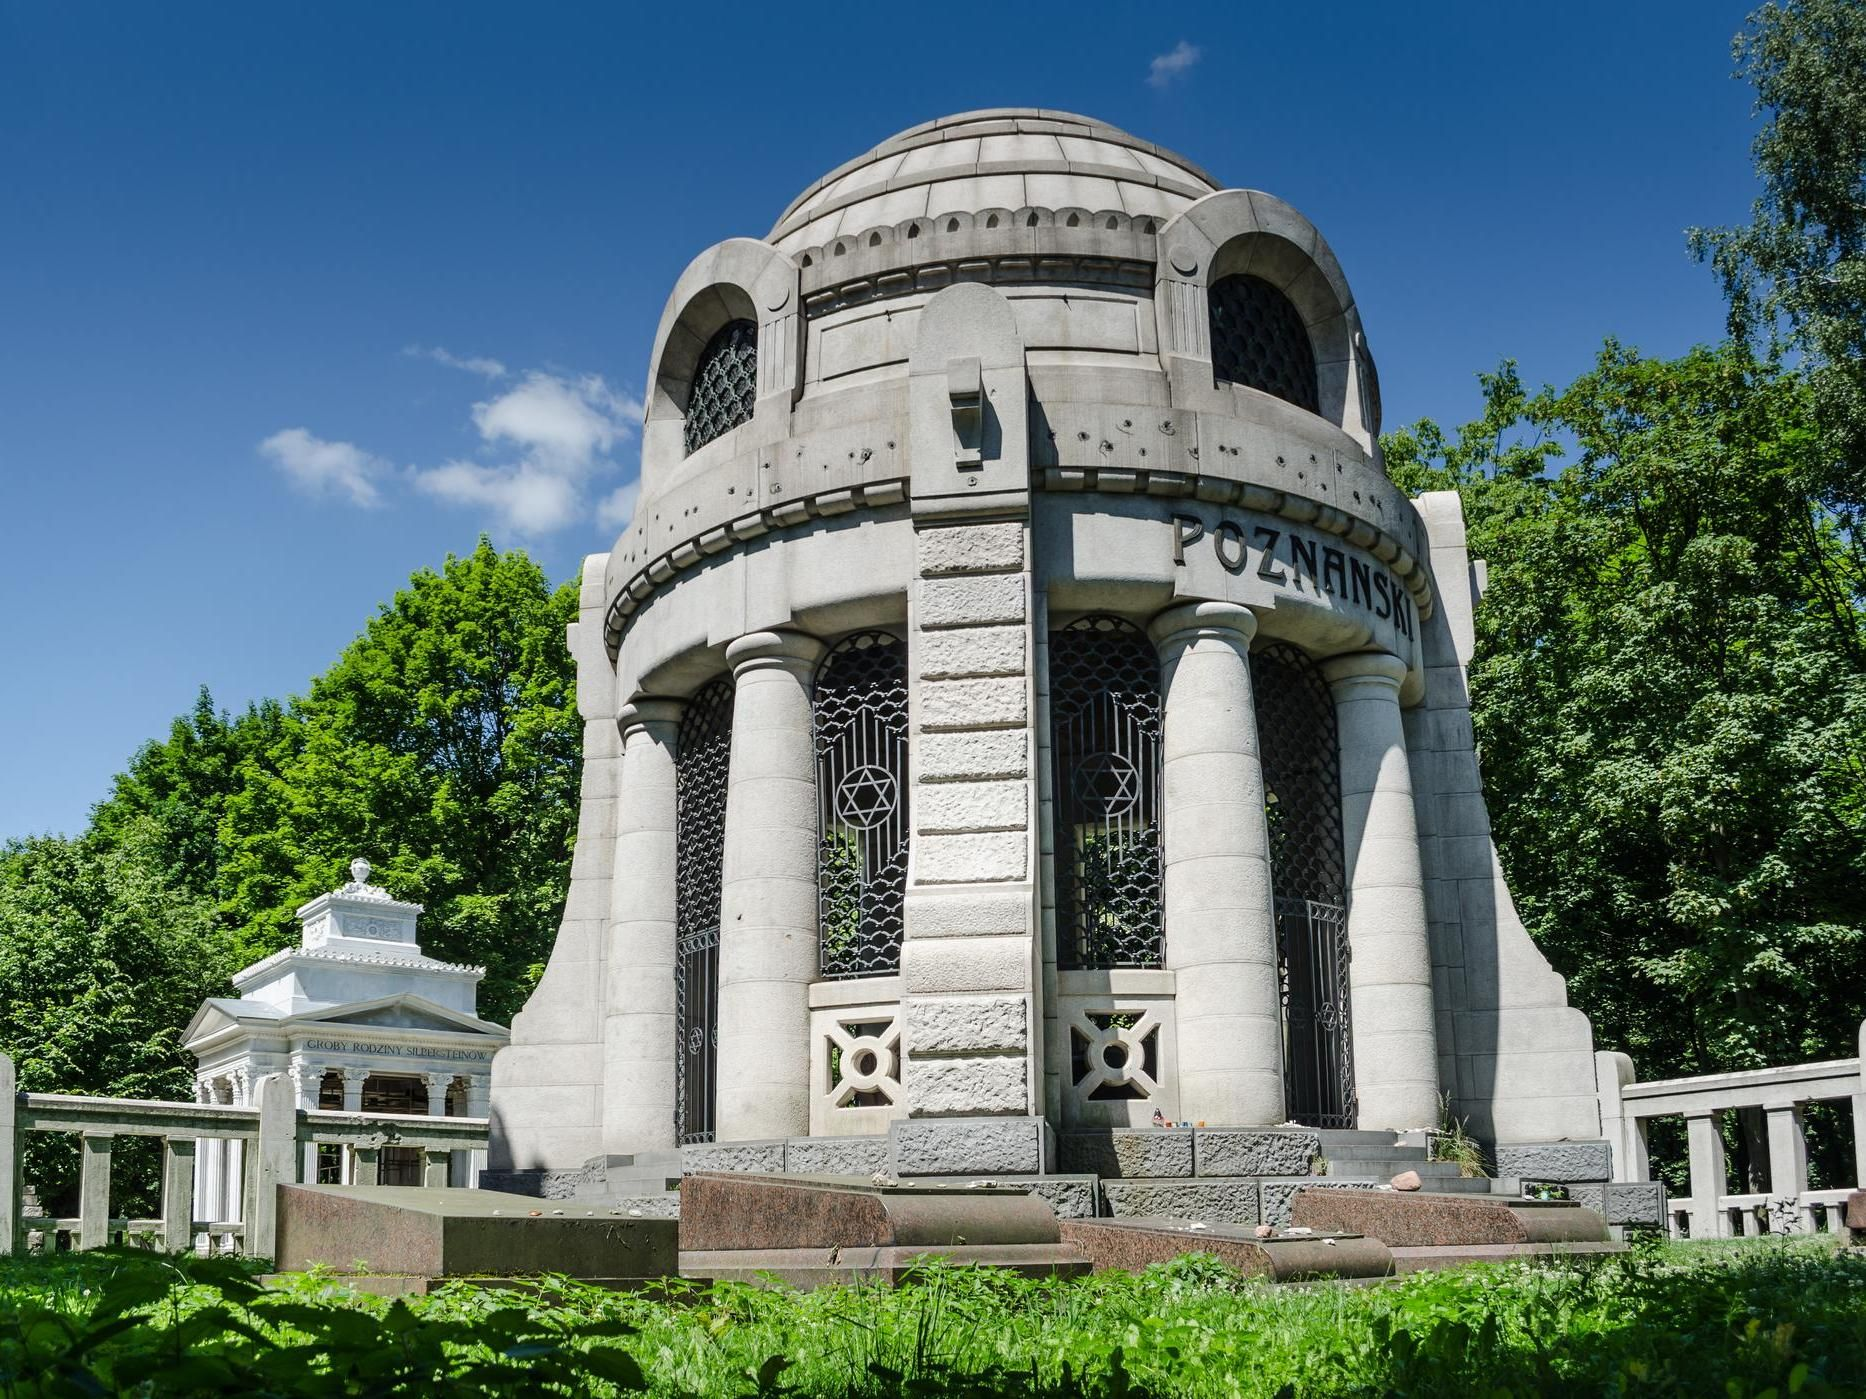 Mausoleum of I. Poznański at the Jewish Cemetery , fot. P. Wojtyczka